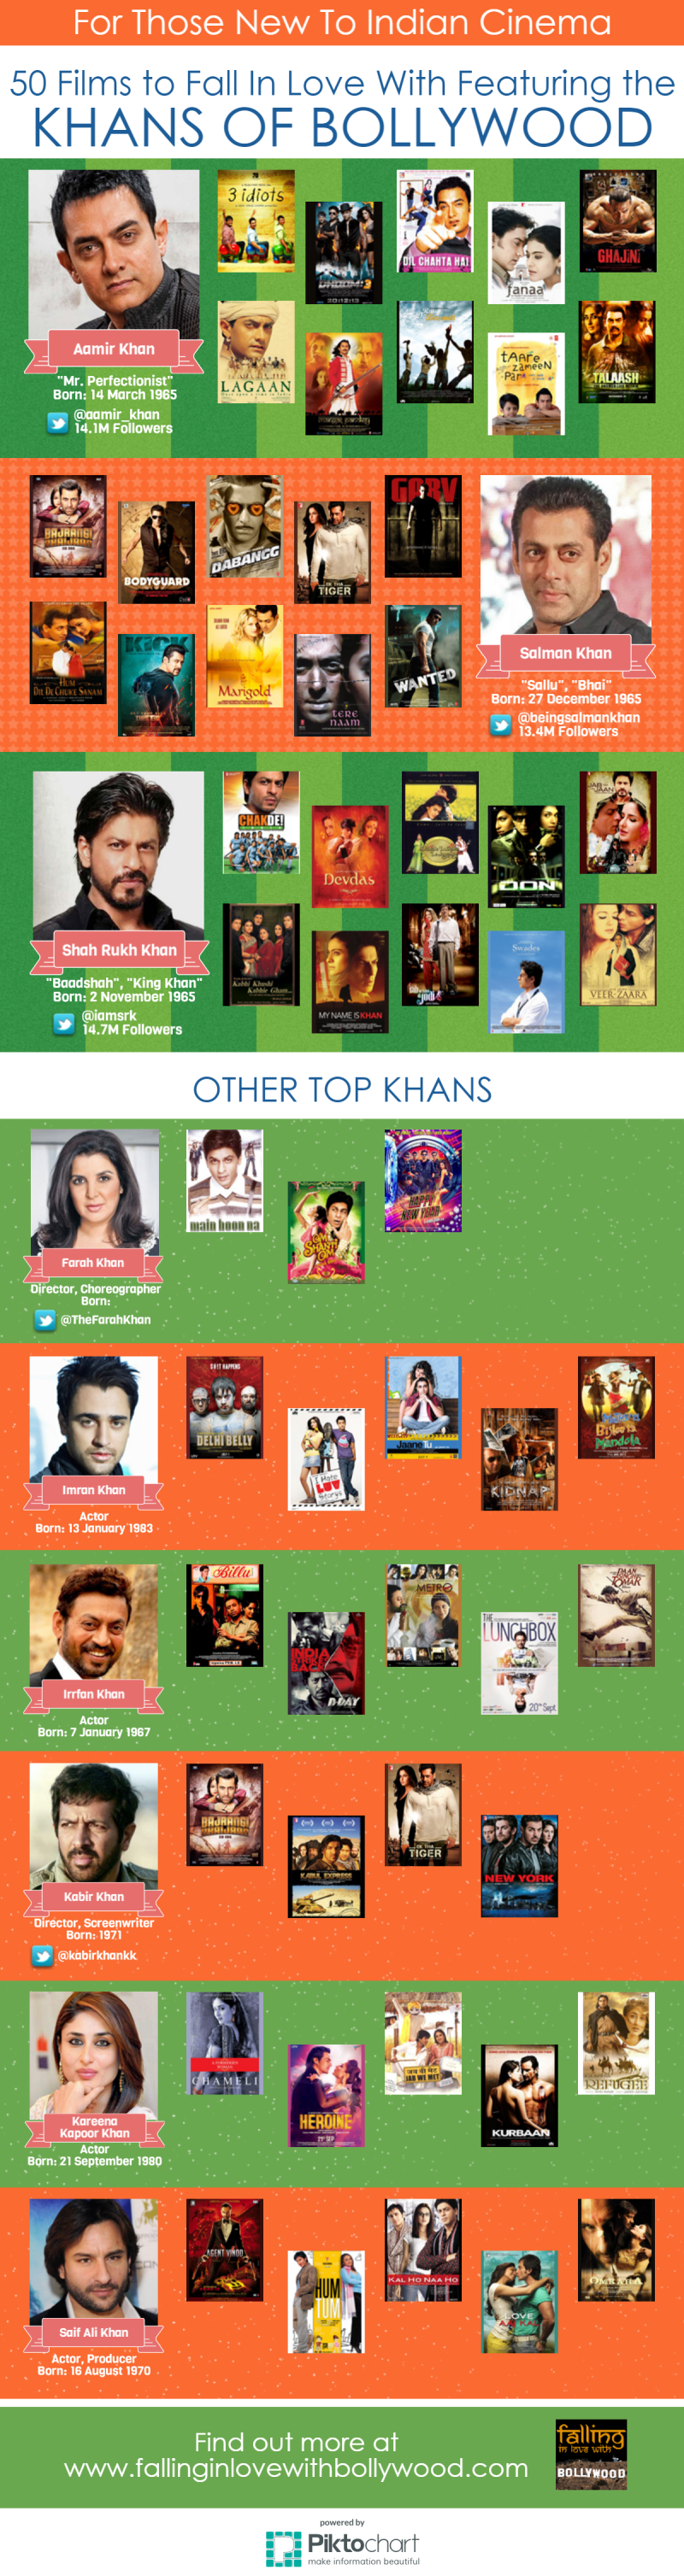 Top Khans of Bollywood